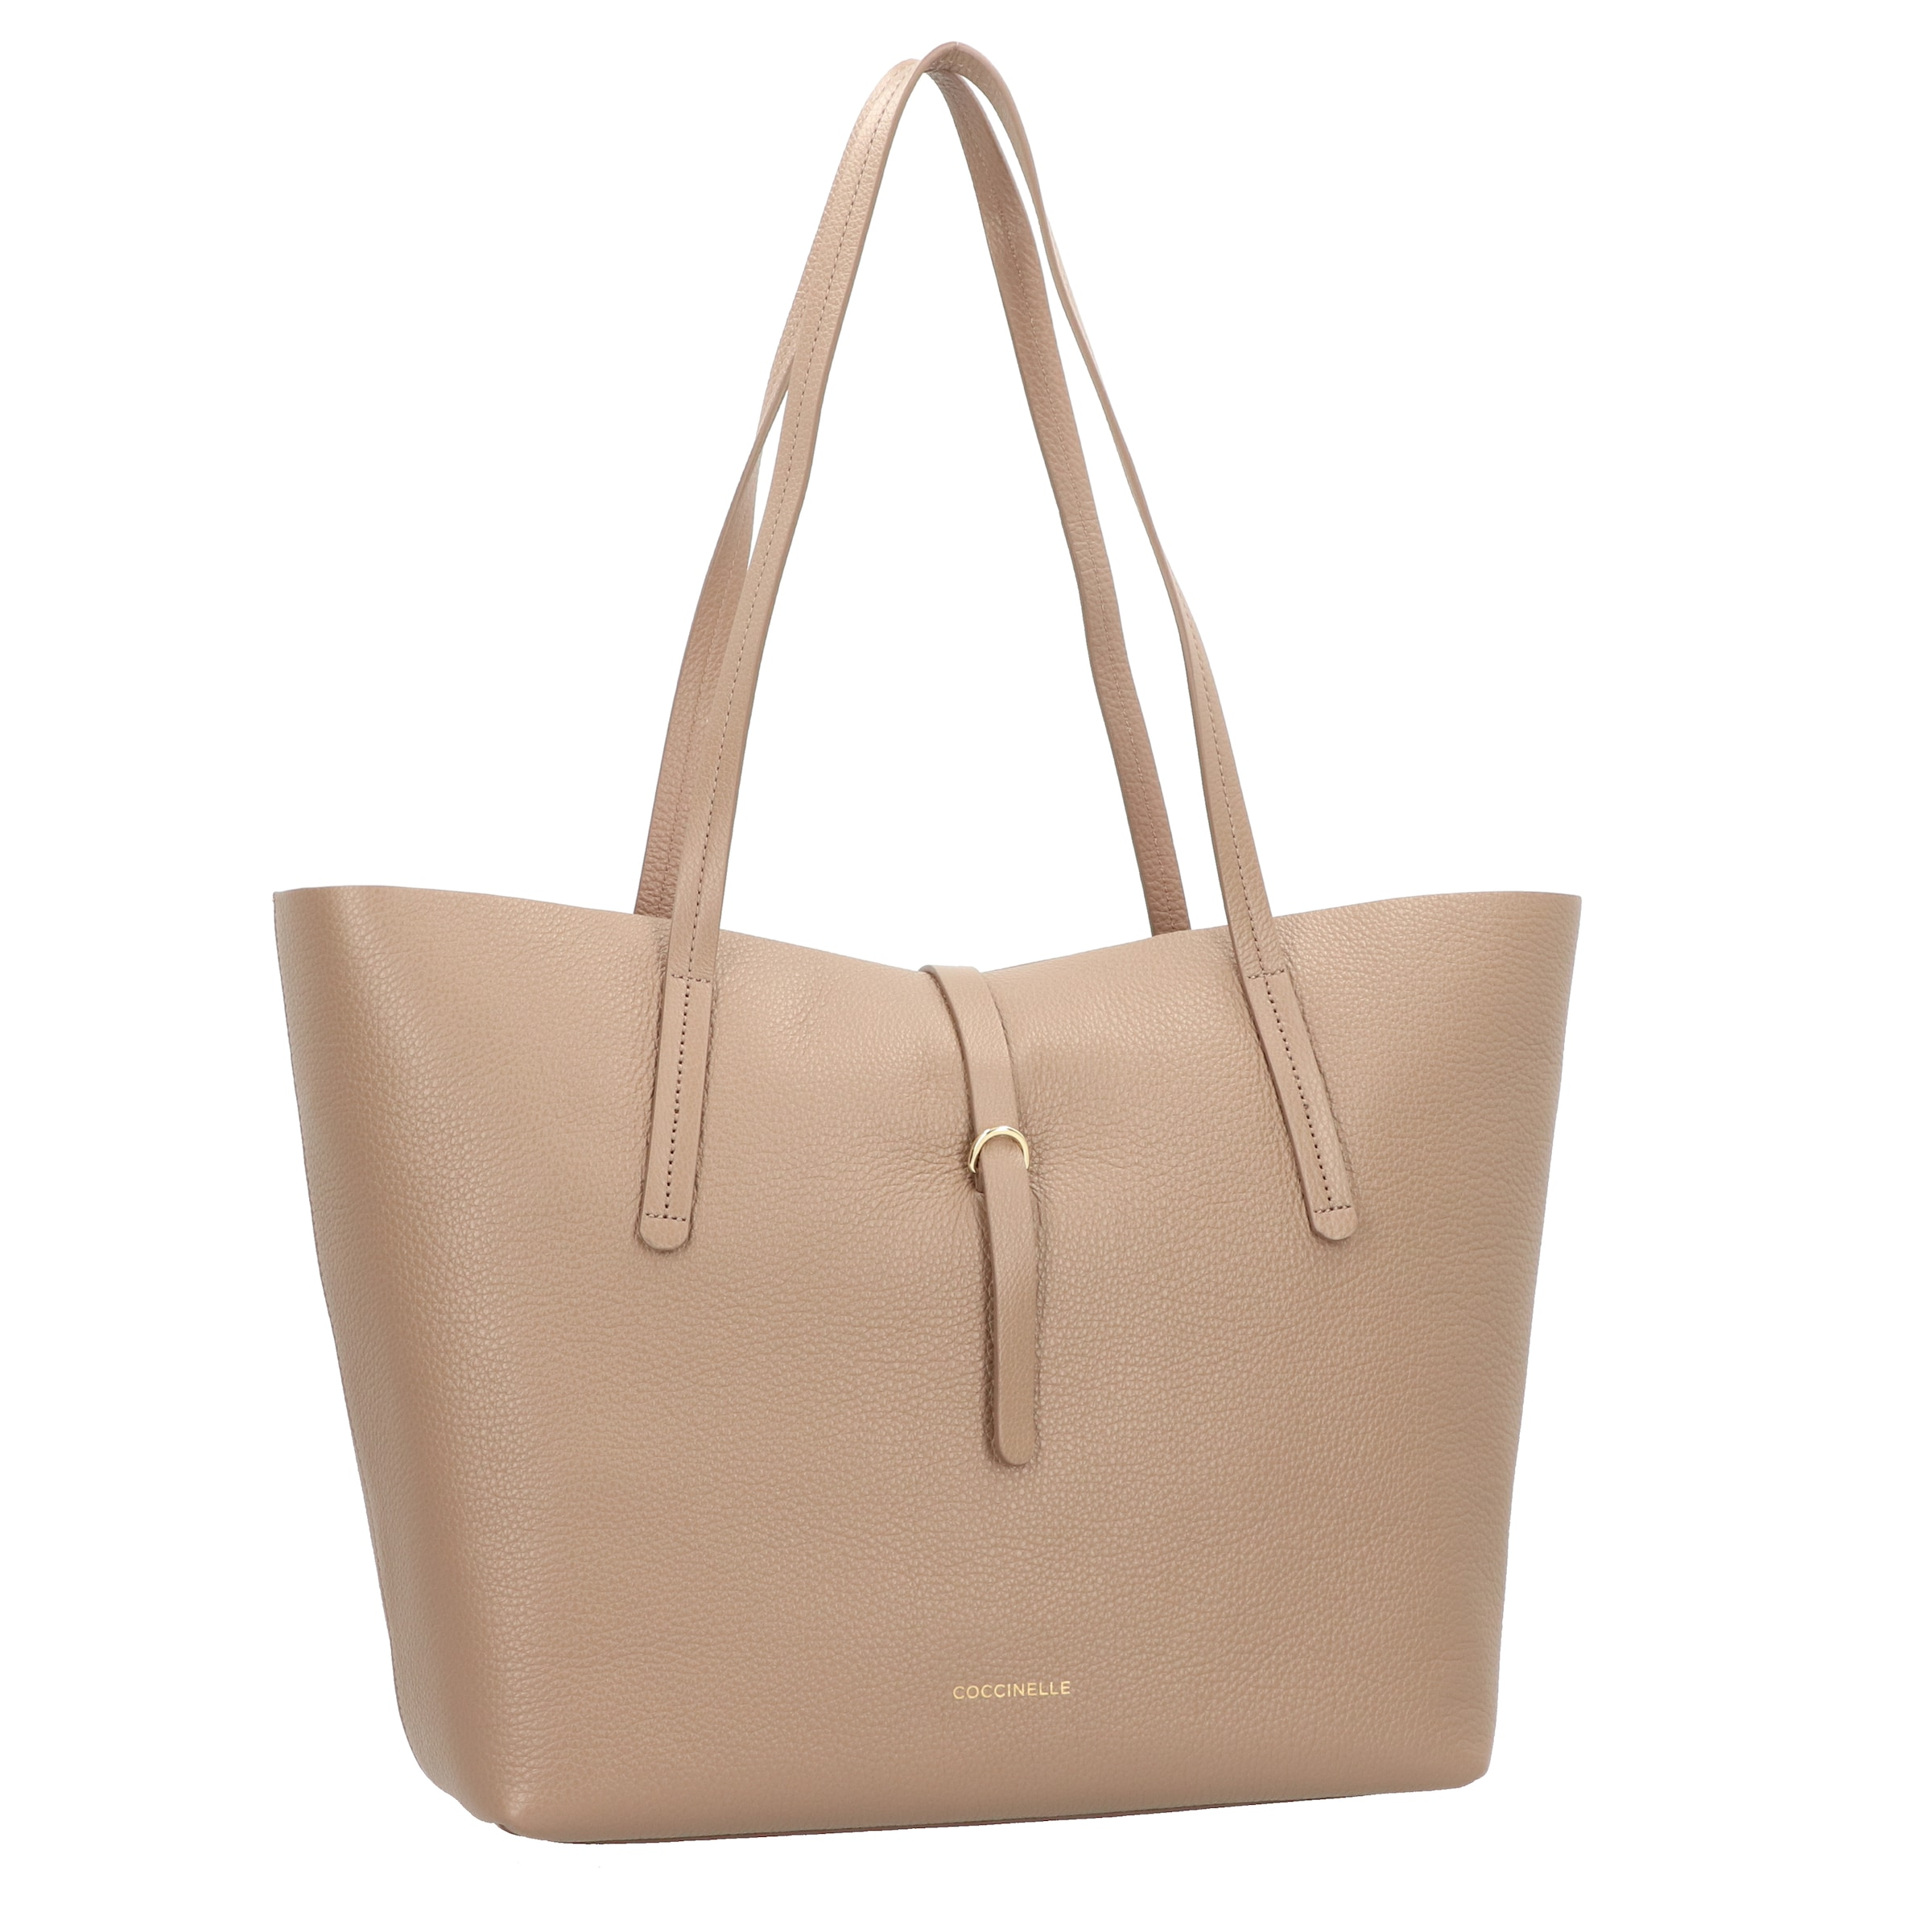 Shopper 32 In Cm Camel 'dione' Coccinelle kZOiPuX